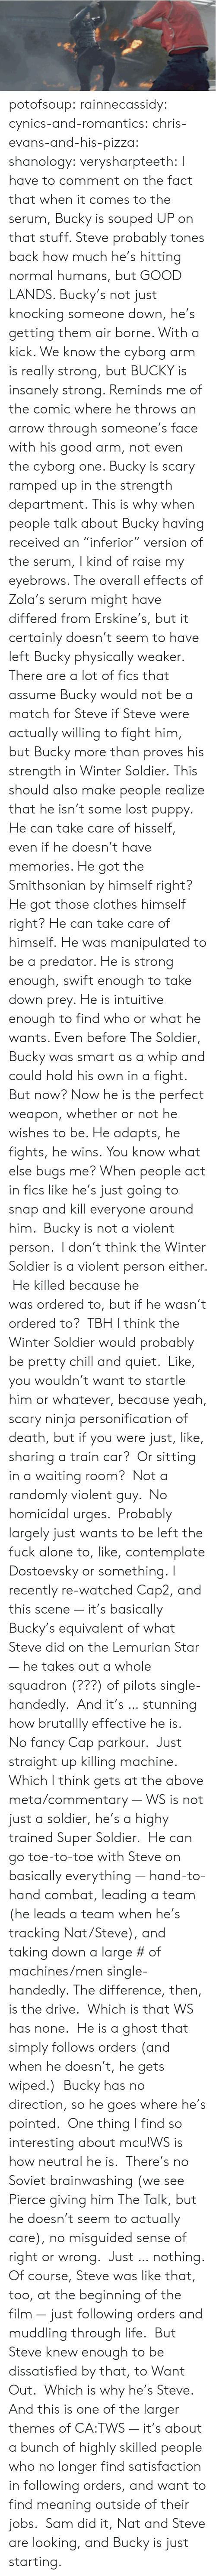 "wiped: potofsoup: rainnecassidy:  cynics-and-romantics:  chris-evans-and-his-pizza:  shanology:  verysharpteeth:  I have to comment on the fact that when it comes to the serum, Bucky is souped UP on that stuff. Steve probably tones back how much he's hitting normal humans, but GOOD LANDS. Bucky's not just knocking someone down, he's getting them air borne. With a kick. We know the cyborg arm is really strong, but BUCKY is insanely strong. Reminds me of the comic where he throws an arrow through someone's face with his good arm, not even the cyborg one. Bucky is scary ramped up in the strength department.  This is why when people talk about Bucky having received an ""inferior"" version of the serum, I kind of raise my eyebrows. The overall effects of Zola's serum might have differed from Erskine's, but it certainly doesn't seem to have left Bucky physically weaker. There are a lot of fics that assume Bucky would not be a match for Steve if Steve were actually willing to fight him, but Bucky more than proves his strength in Winter Soldier.  This should also make people realize that he isn't some lost puppy. He can take care of hisself, even if he doesn't have memories. He got the Smithsonian by himself right? He got those clothes himself right? He can take care of himself.  He was manipulated to be a predator. He is strong enough, swift enough to take down prey. He is intuitive enough to find who or what he wants. Even before The Soldier, Bucky was smart as a whip and could hold his own in a fight. But now? Now he is the perfect weapon, whether or not he wishes to be. He adapts, he fights, he wins.  You know what else bugs me? When people act in fics like he's just going to snap and kill everyone around him.  Bucky is not a violent person.  I don't think the Winter Soldier is a violent person either.  He killed because he was ordered to, but if he wasn't ordered to?  TBH I think the Winter Soldier would probably be pretty chill and quiet.  Like, you wouldn't want to startle him or whatever, because yeah, scary ninja personification of death, but if you were just, like, sharing a train car?  Or sitting in a waiting room?  Not a randomly violent guy.  No homicidal urges.  Probably largely just wants to be left the fuck alone to, like, contemplate Dostoevsky or something.  I recently re-watched Cap2, and this scene — it's basically Bucky's equivalent of what Steve did on the Lemurian Star — he takes out a whole squadron (???) of pilots single-handedly.  And it's … stunning how brutallly effective he is.  No fancy Cap parkour.  Just straight up killing machine. Which I think gets at the above meta/commentary — WS is not just a soldier, he's a highy trained Super Soldier.  He can go toe-to-toe with Steve on basically everything — hand-to-hand combat, leading a team (he leads a team when he's tracking Nat/Steve), and taking down a large # of machines/men single-handedly. The difference, then, is the drive.  Which is that WS has none.  He is a ghost that simply follows orders (and when he doesn't, he gets wiped.)  Bucky has no direction, so he goes where he's pointed.  One thing I find so interesting about mcu!WS is how neutral he is.  There's no Soviet brainwashing (we see Pierce giving him The Talk, but he doesn't seem to actually care), no misguided sense of right or wrong.  Just … nothing. Of course, Steve was like that, too, at the beginning of the film — just following orders and muddling through life.  But Steve knew enough to be dissatisfied by that, to Want Out.  Which is why he's Steve. And this is one of the larger themes of CA:TWS — it's about a bunch of highly skilled people who no longer find satisfaction in following orders, and want to find meaning outside of their jobs.  Sam did it, Nat and Steve are looking, and Bucky is just starting."